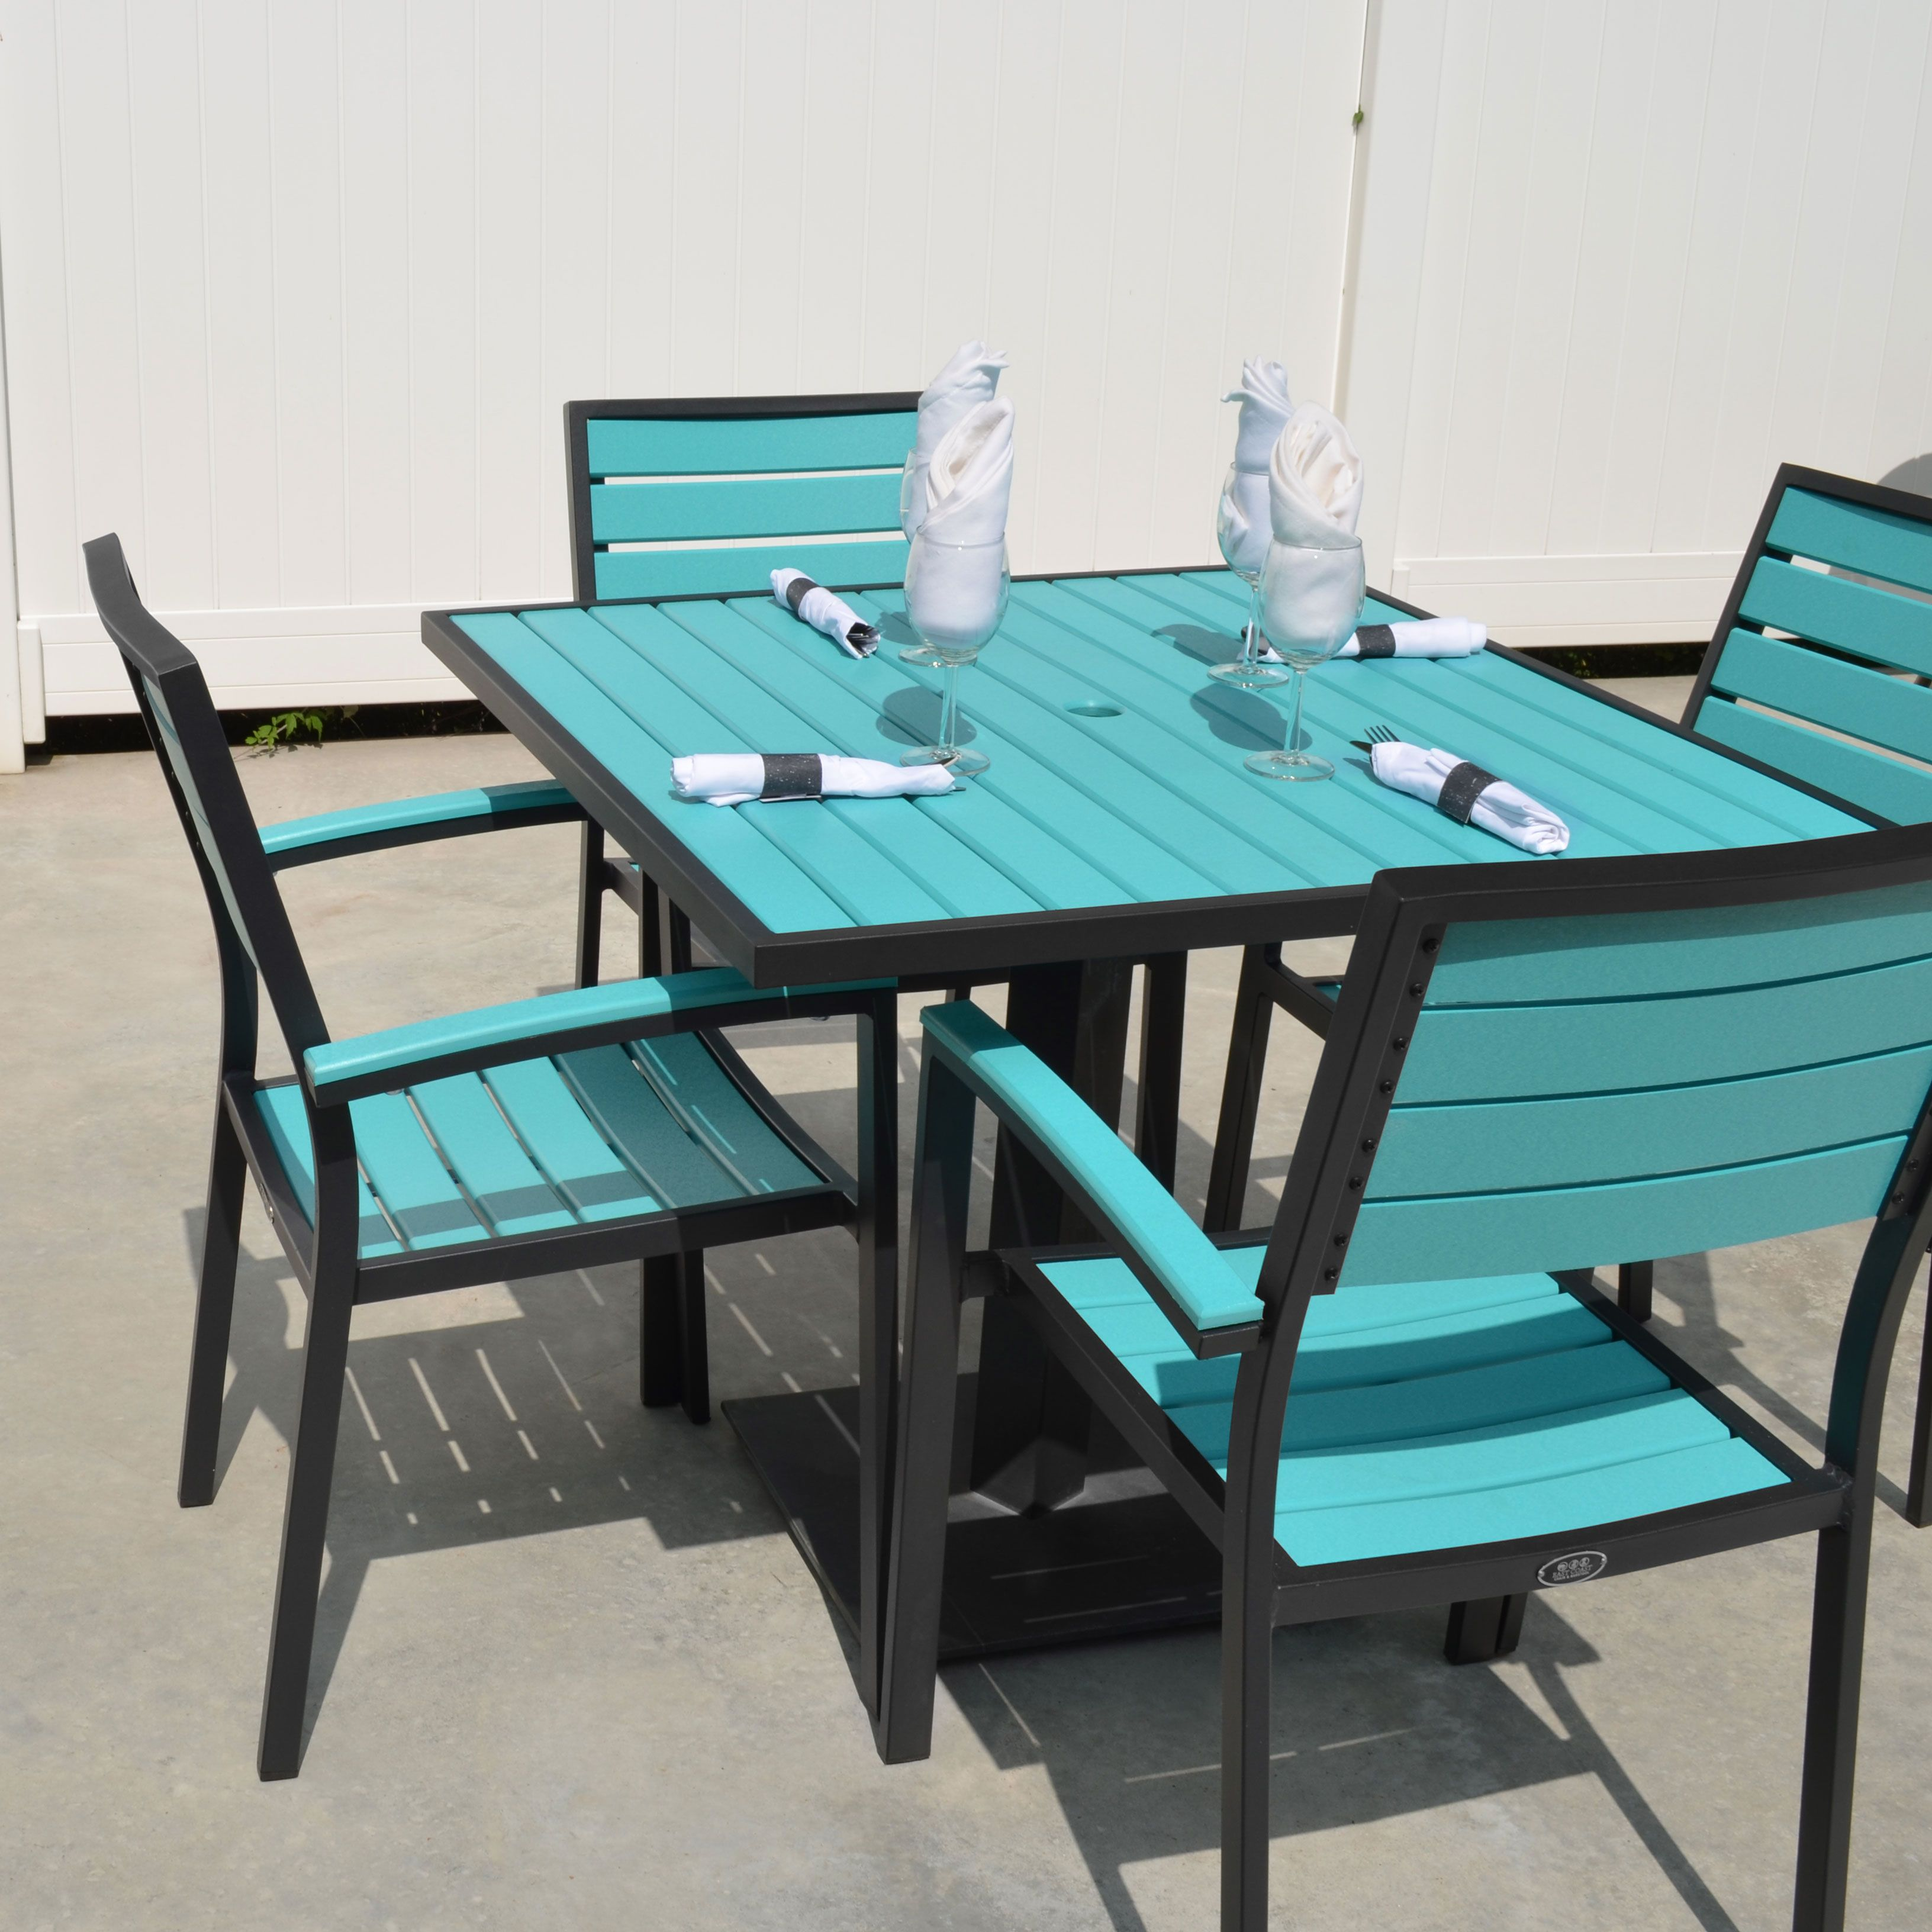 Pin On Commercial Outdoor Furniture